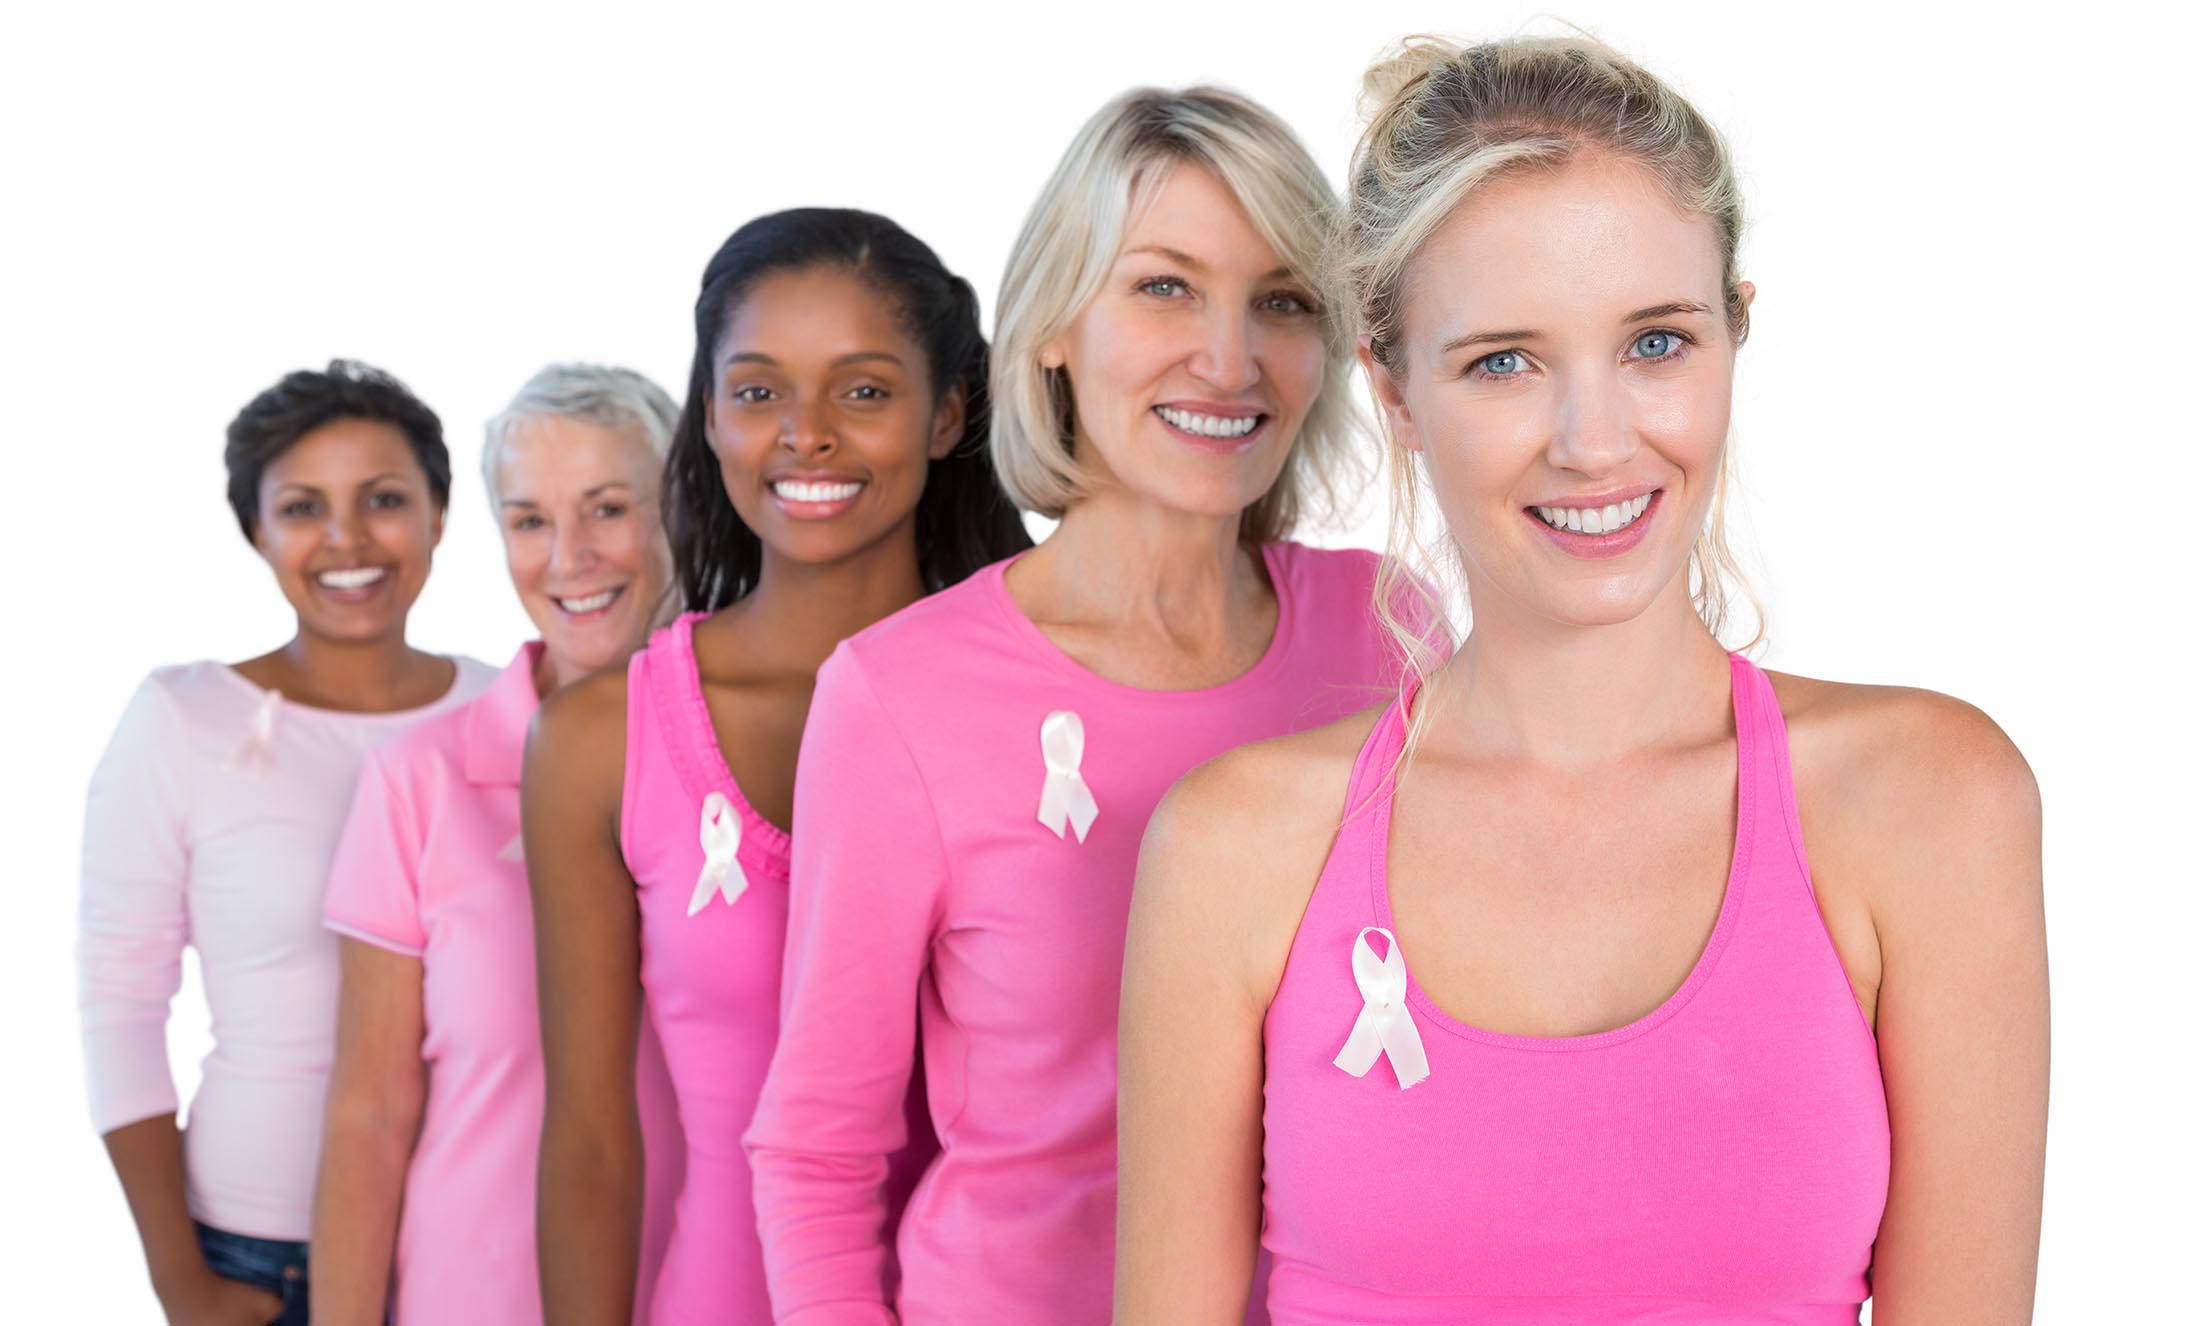 Breast Health 101: Facts & Figures